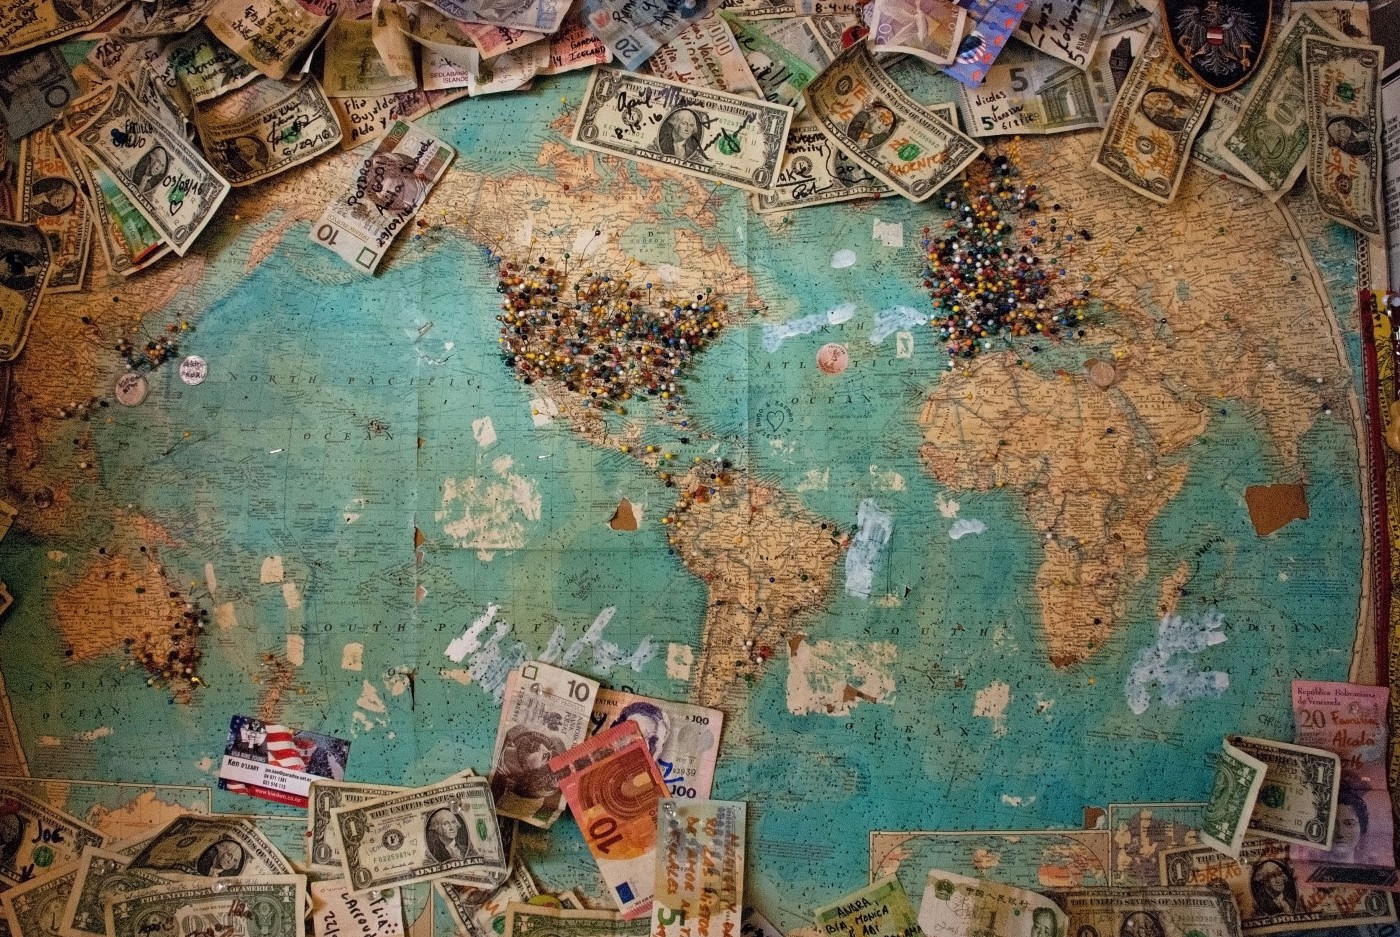 A beautiful map with money on the board